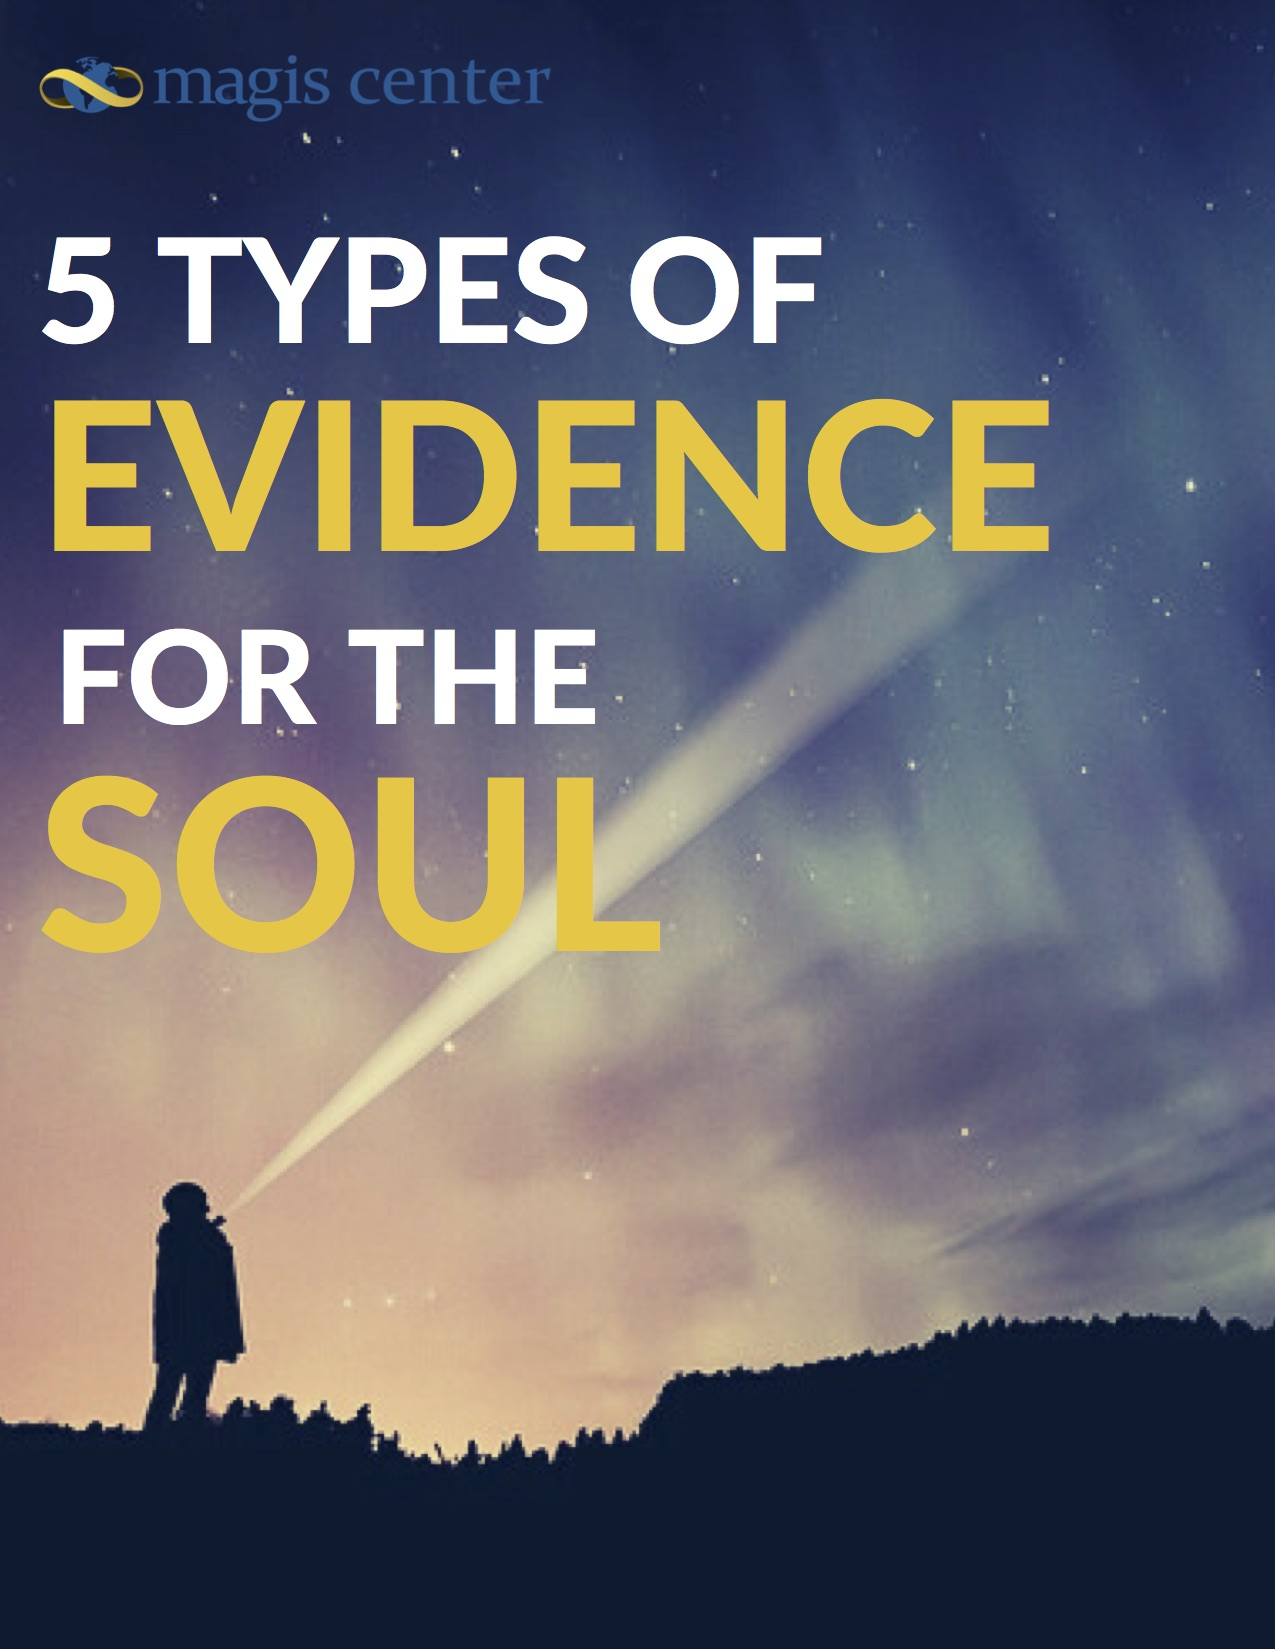 5 Types of Evidence for a Soul